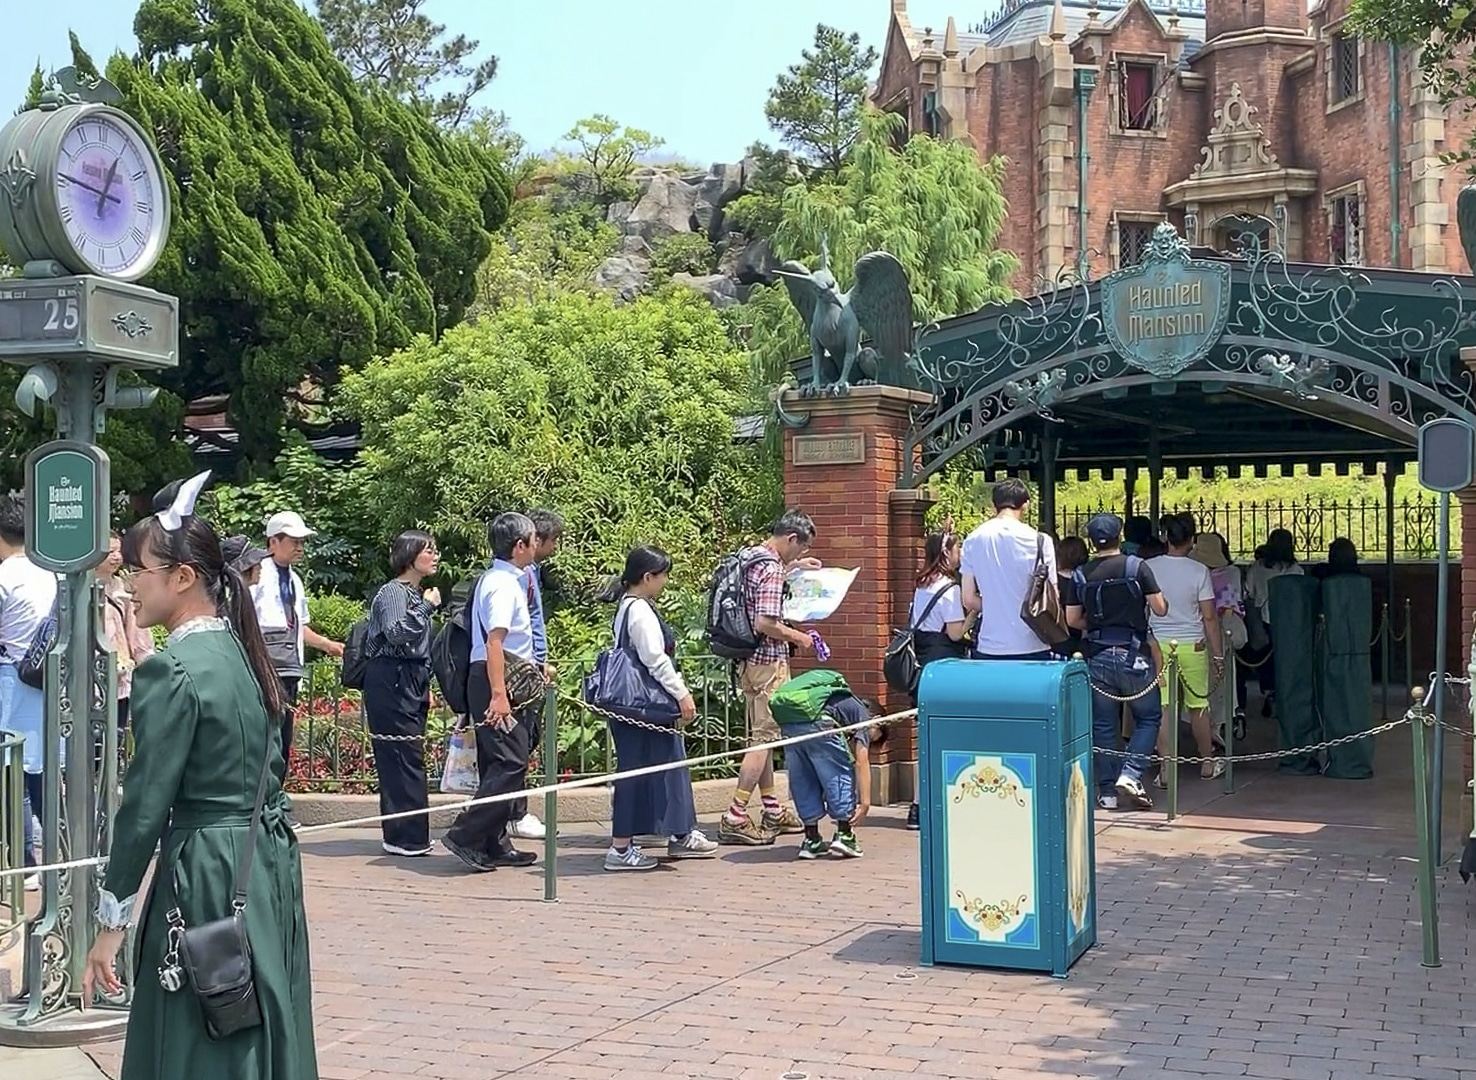 People line up for Haunted Manson at Tokyo Disneyland.